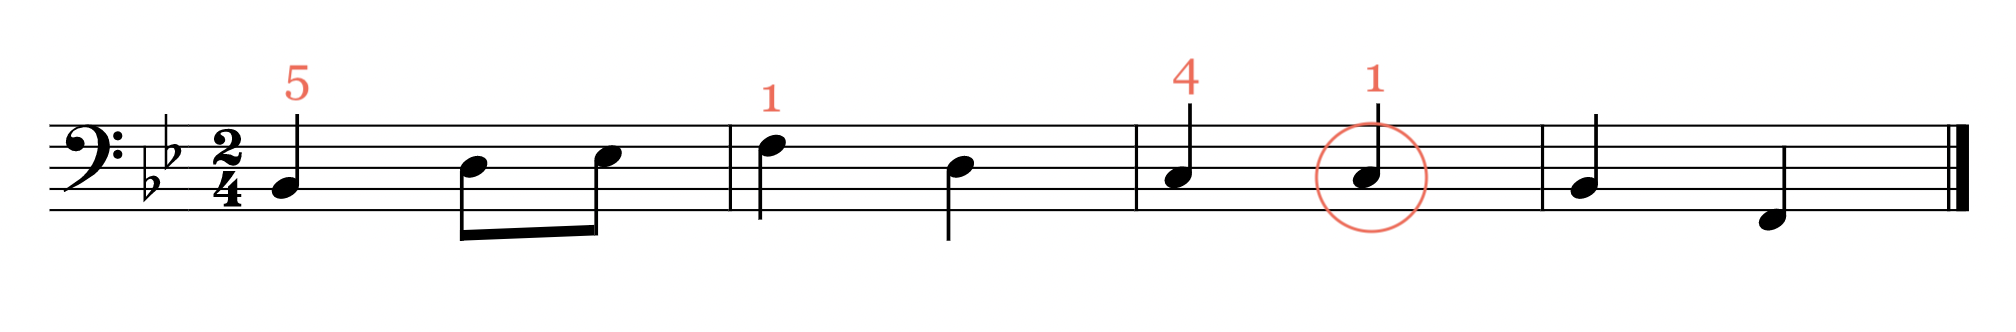 using repeated notes to change hand position